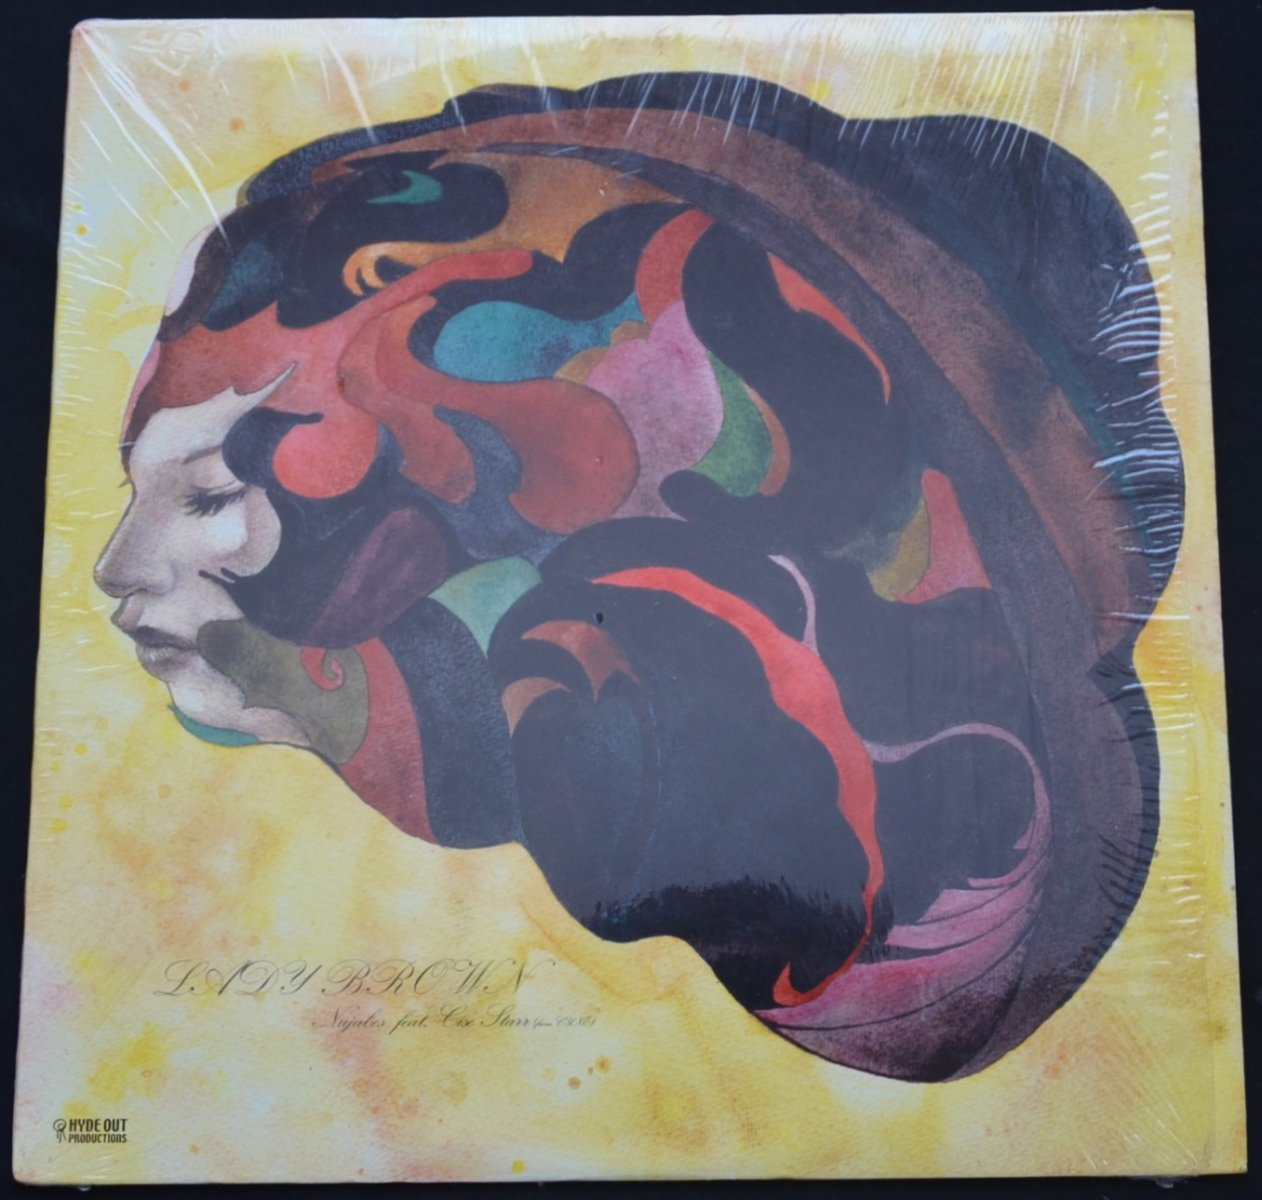 NUJABES FEATURING CISE STARR / LADY BROWN (12